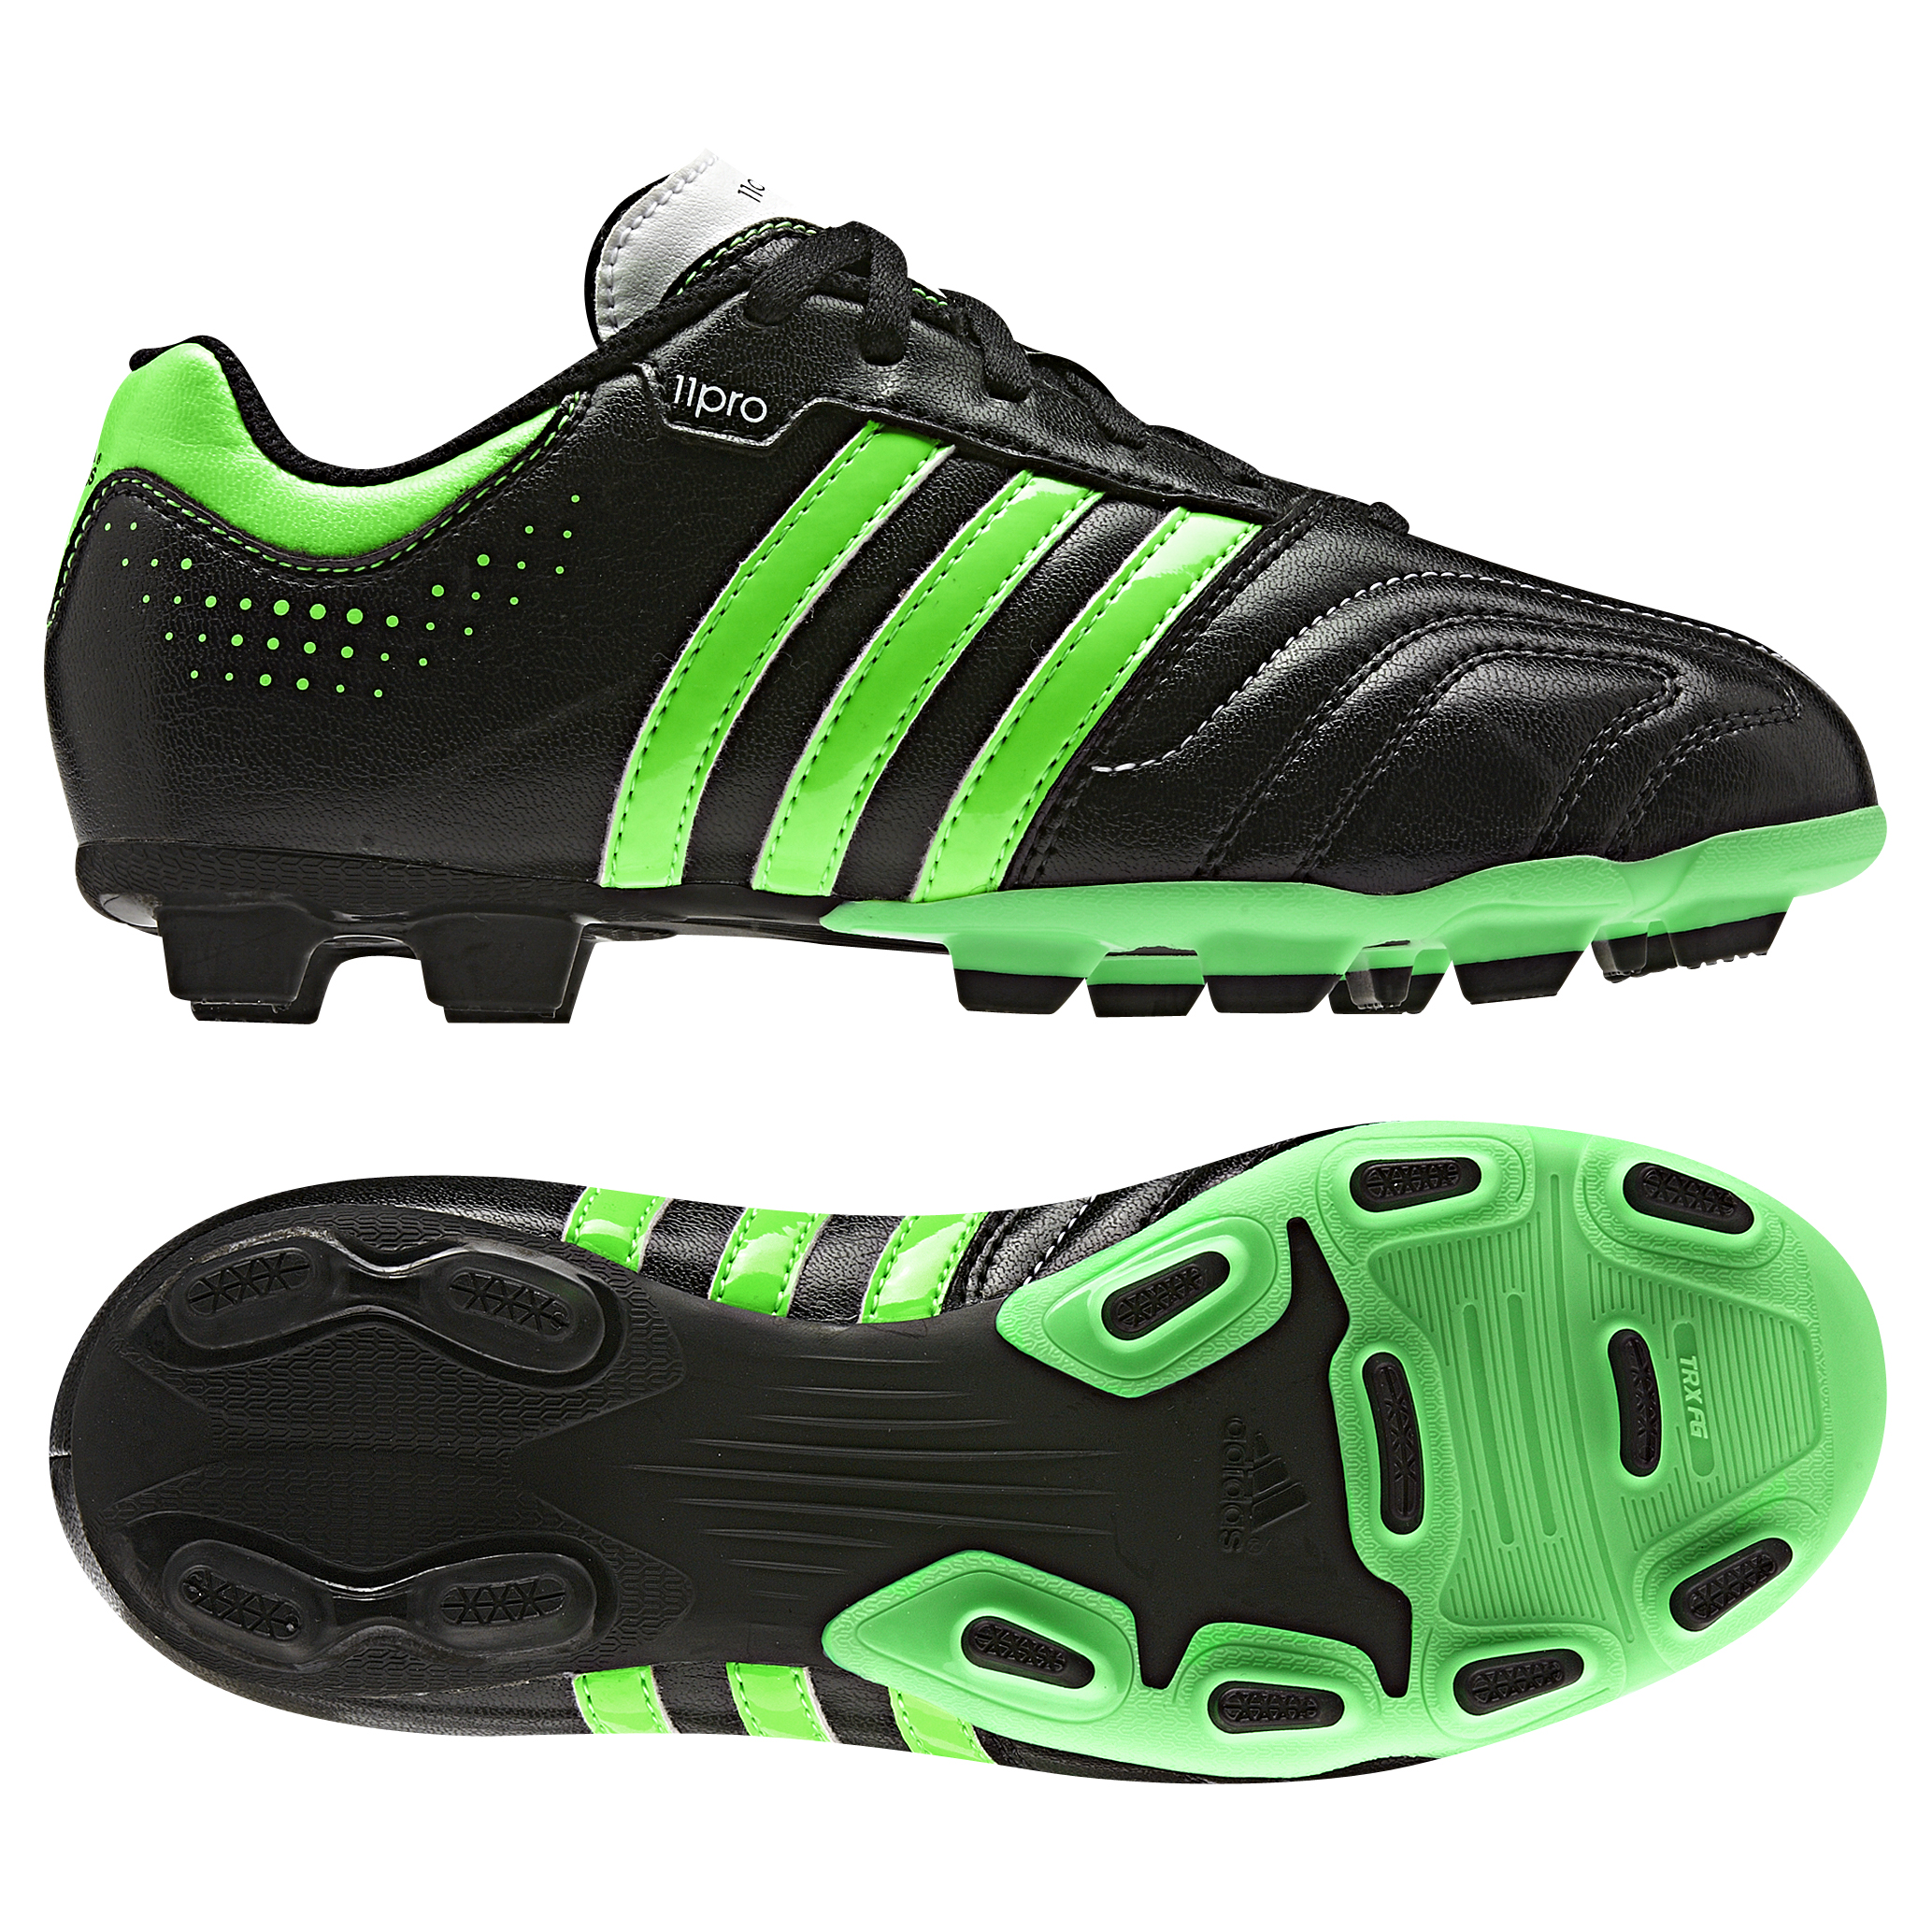 Adidas AdiPure 11Questra TRX Firm Ground Football Boots - Black/Green Zest/White - Kids